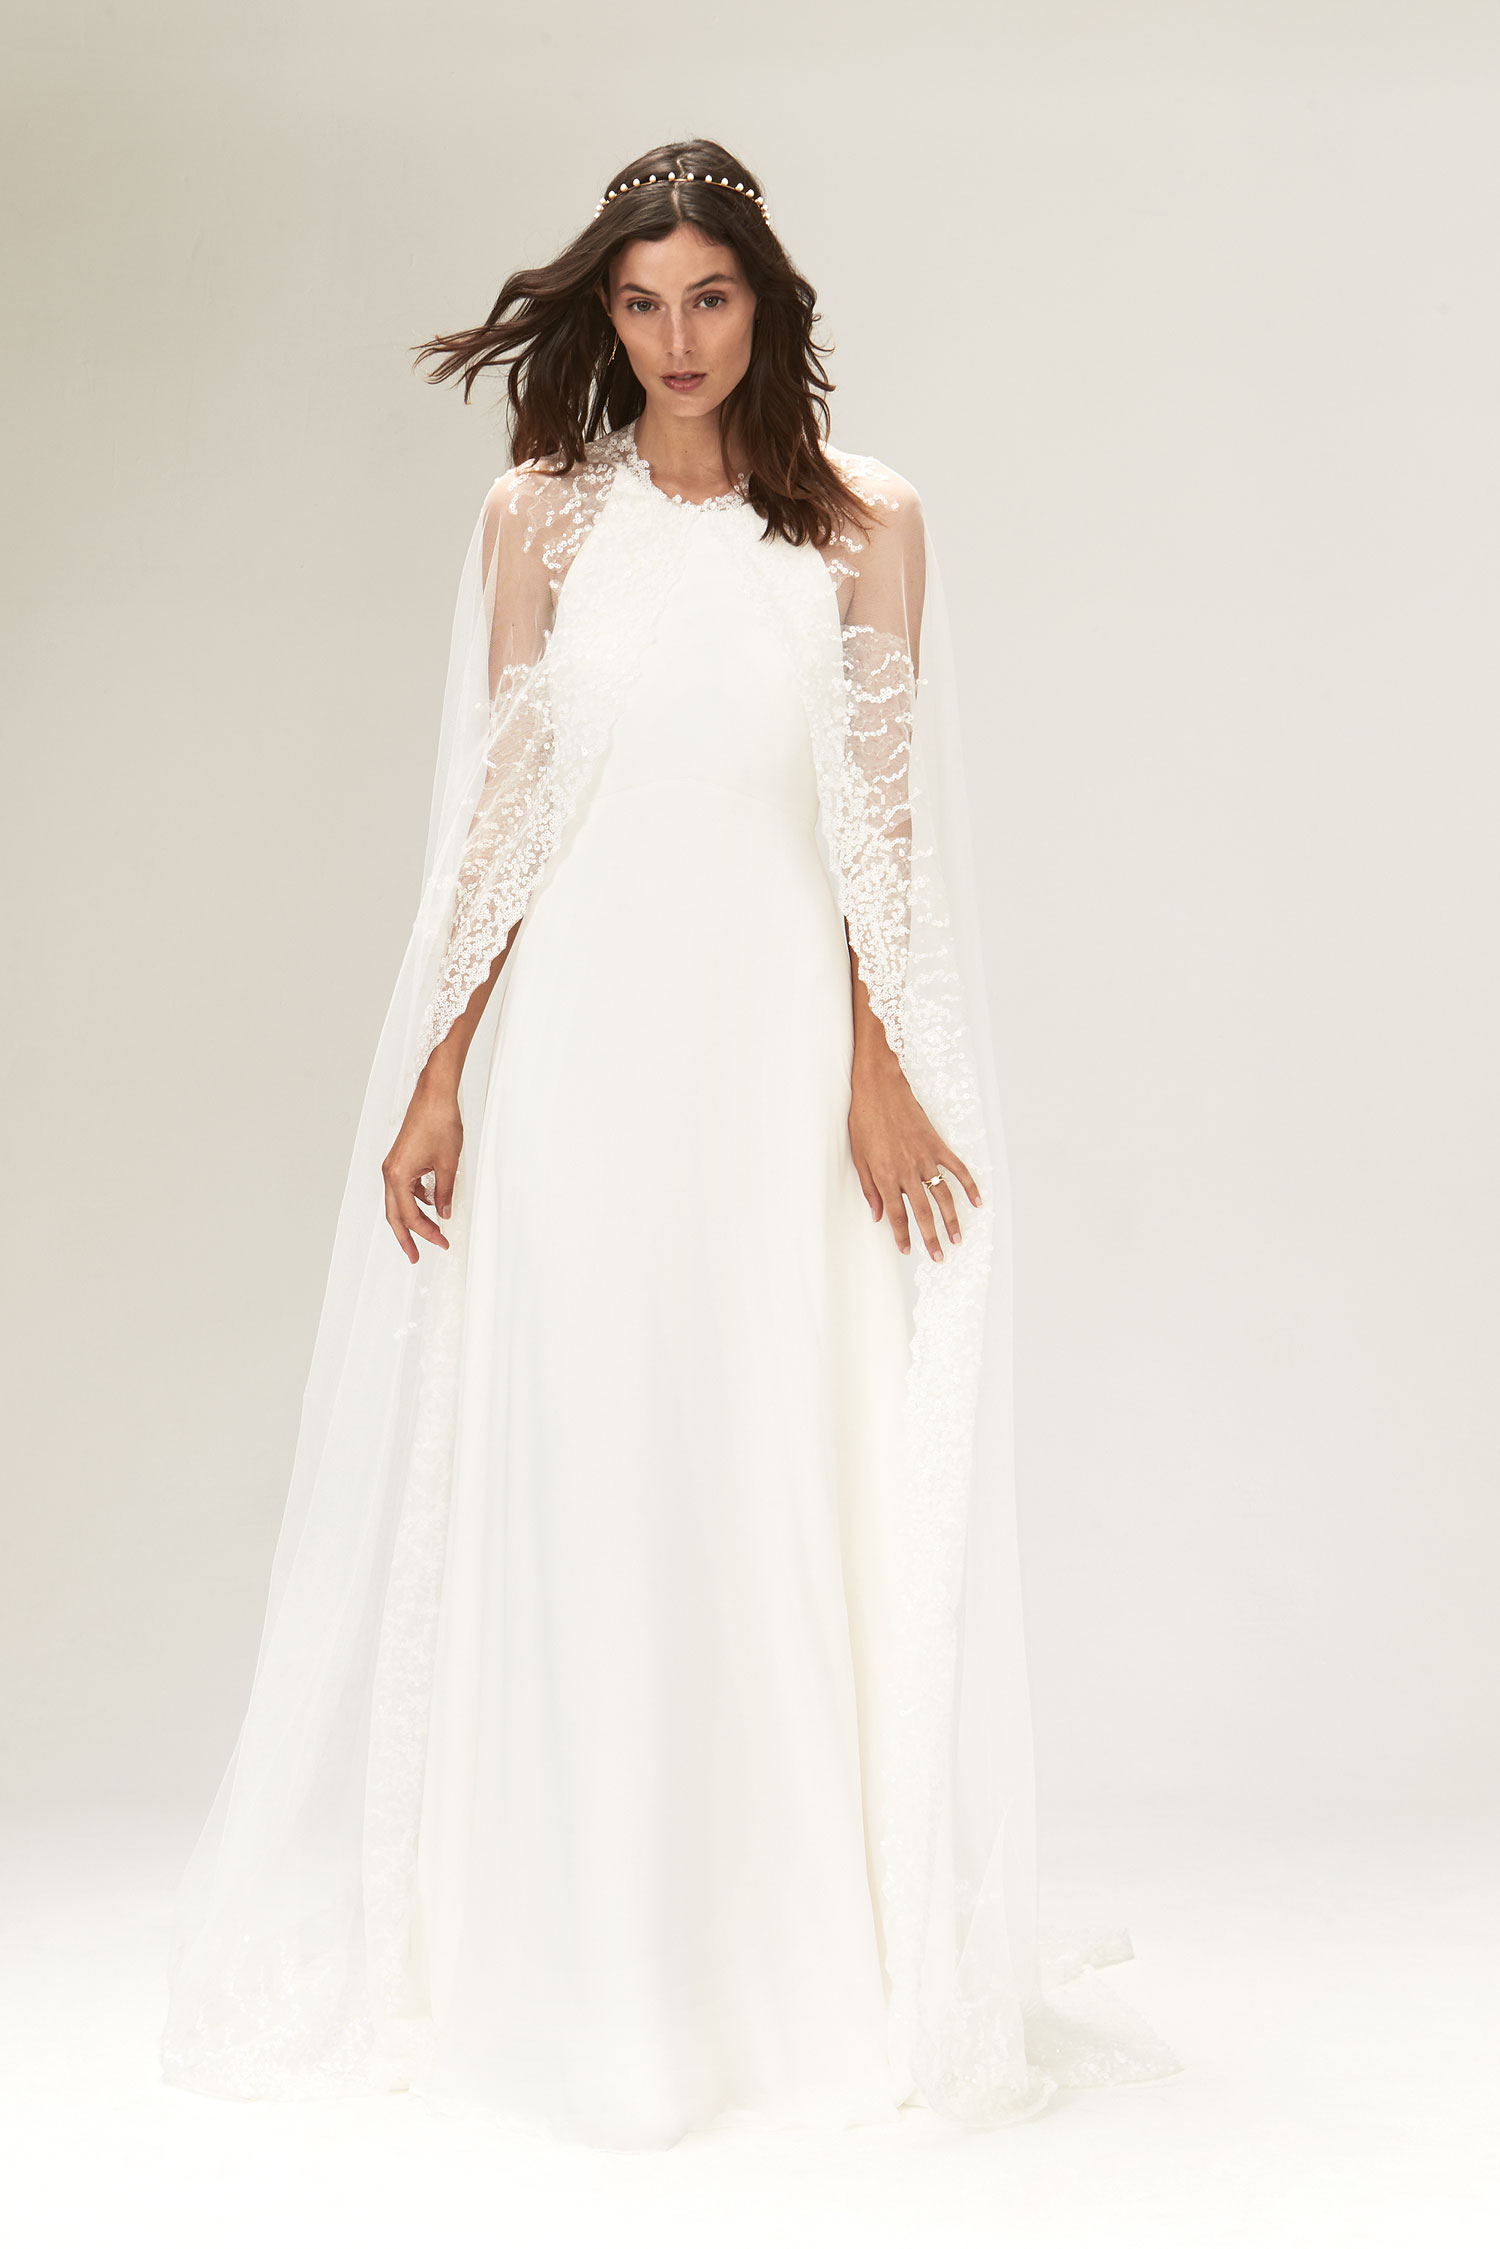 Halloween-inspired wedding dress with cape savannah miller fall 2019